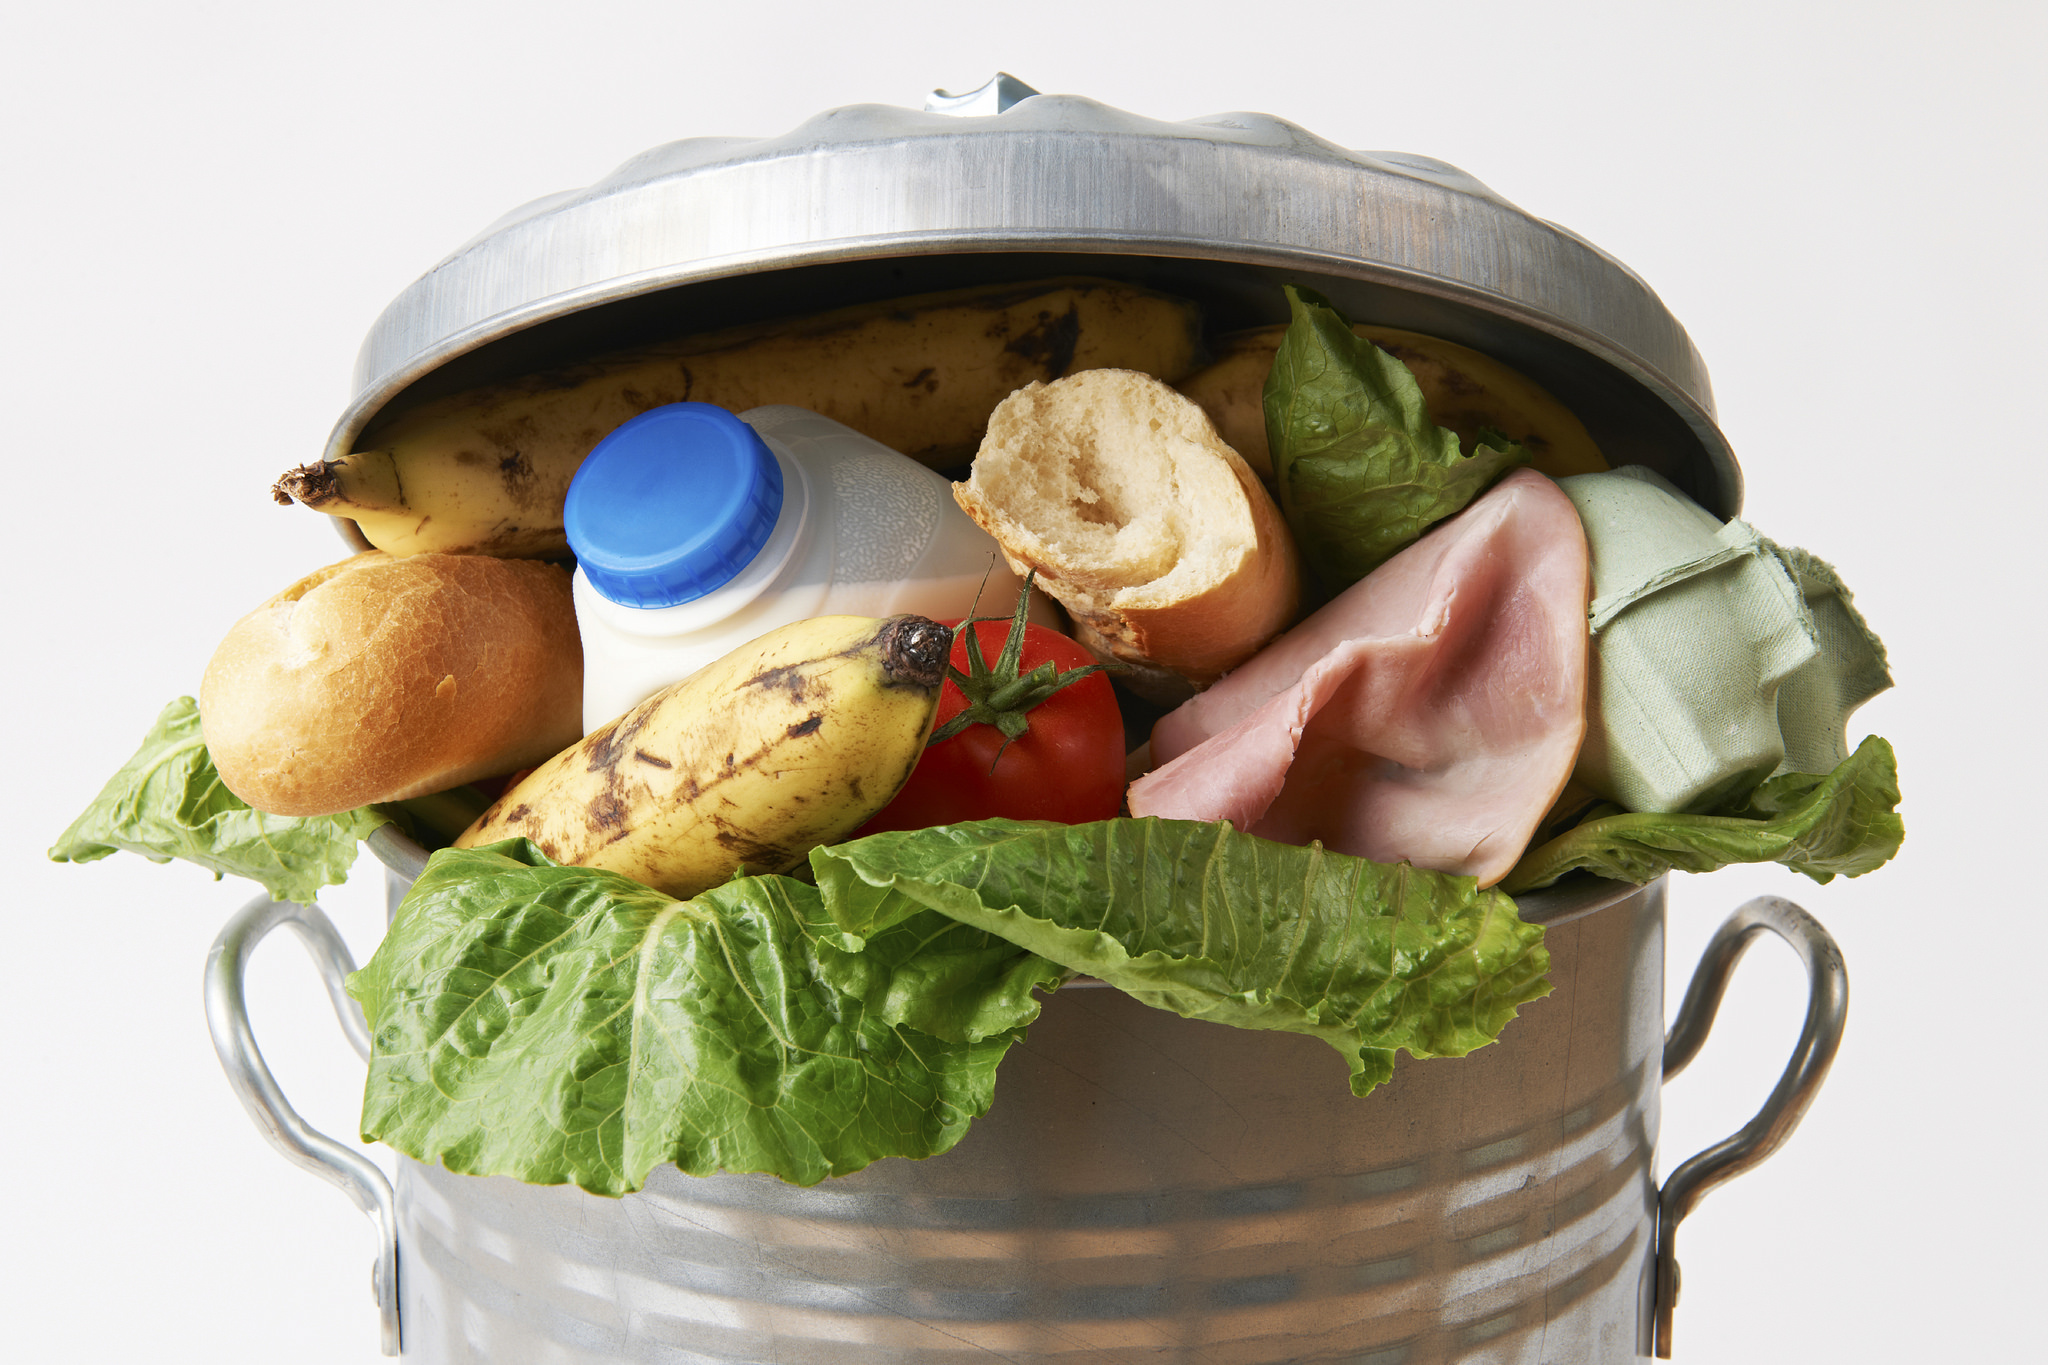 Garbage can brimming with food waste